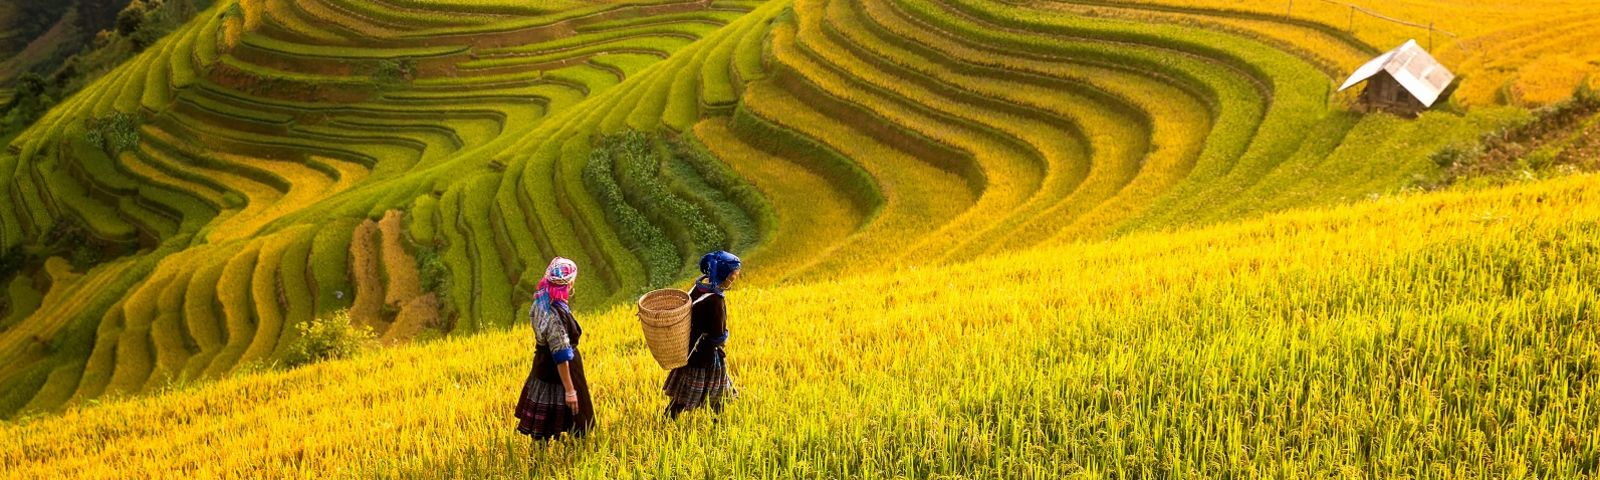 Sapa - Vietnam destinations